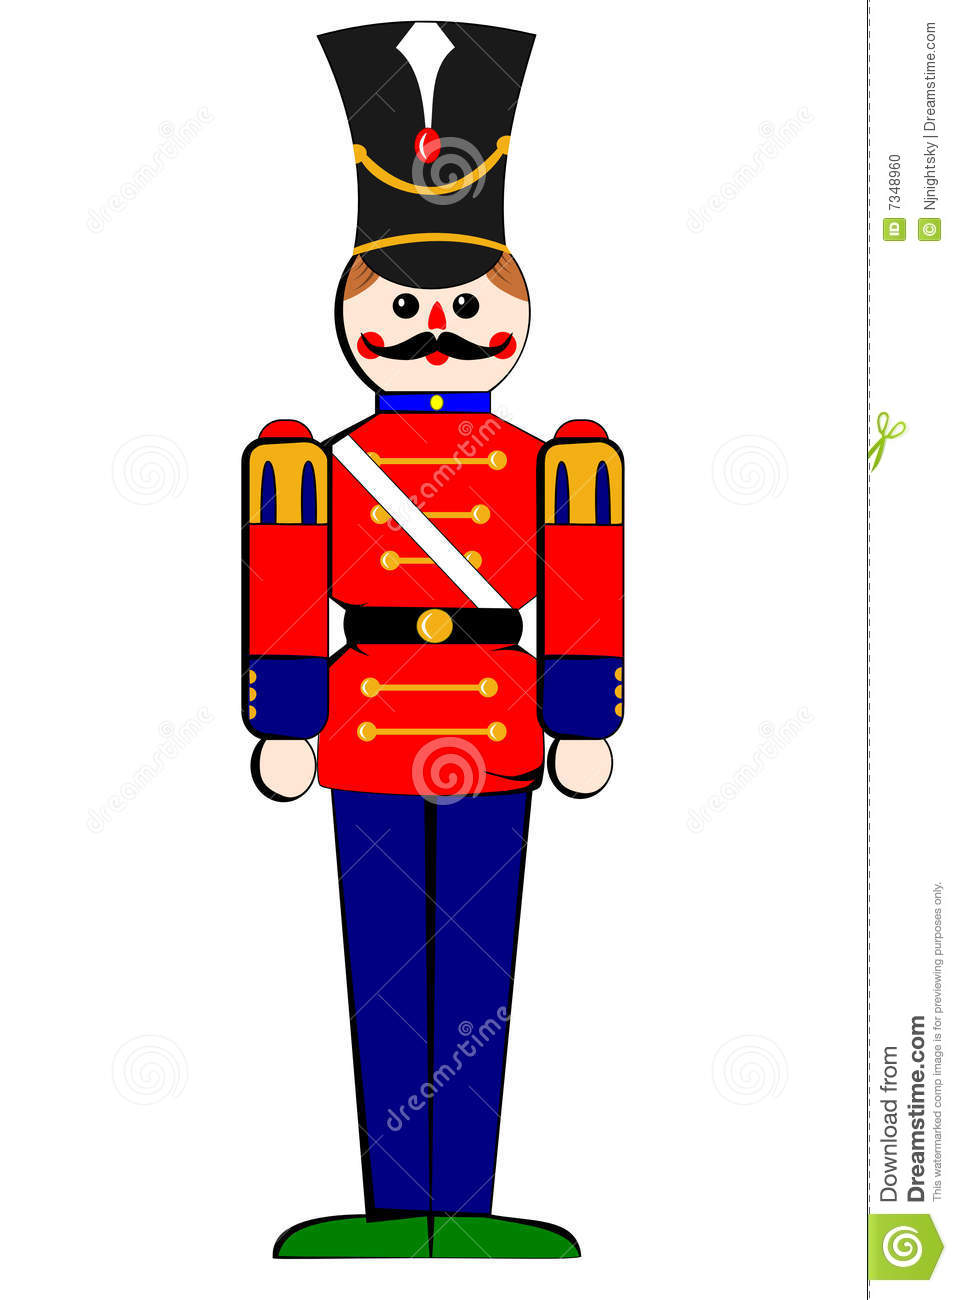 Isolated Toy Wooden Soldier Stock Photo - Image: 7348960